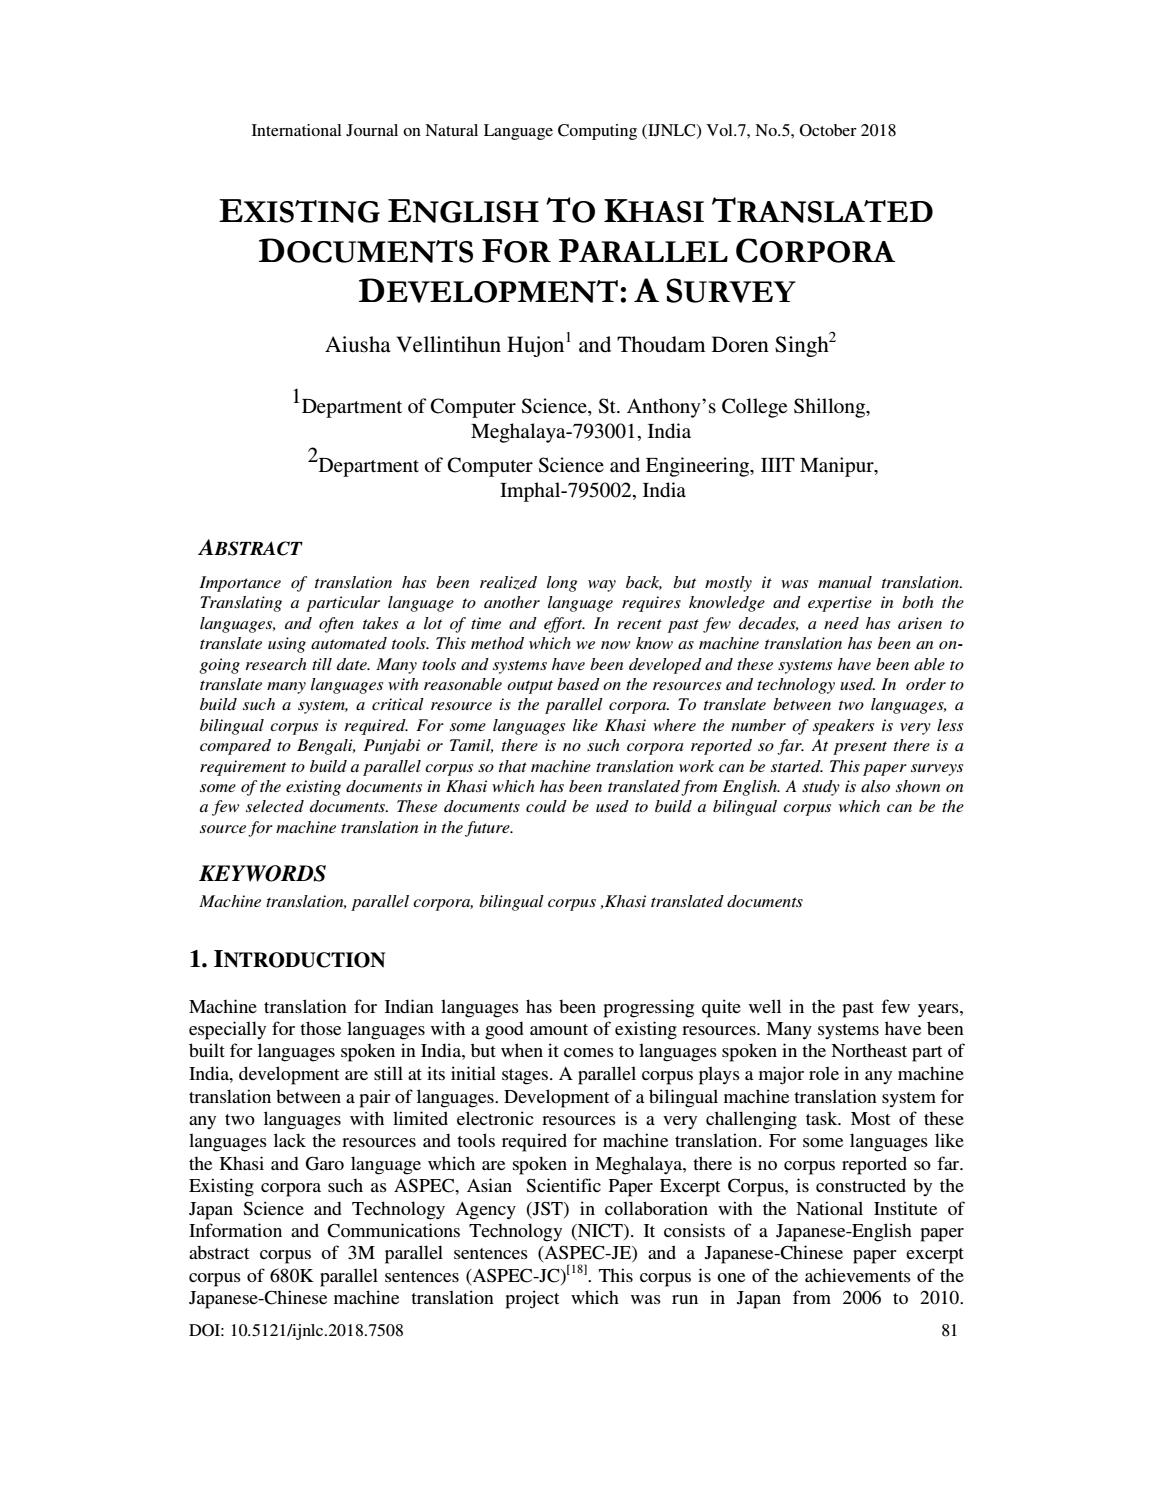 EXISTING ENGLISH TO KHASI TRANSLATED DOCUMENTS FOR PARALLEL